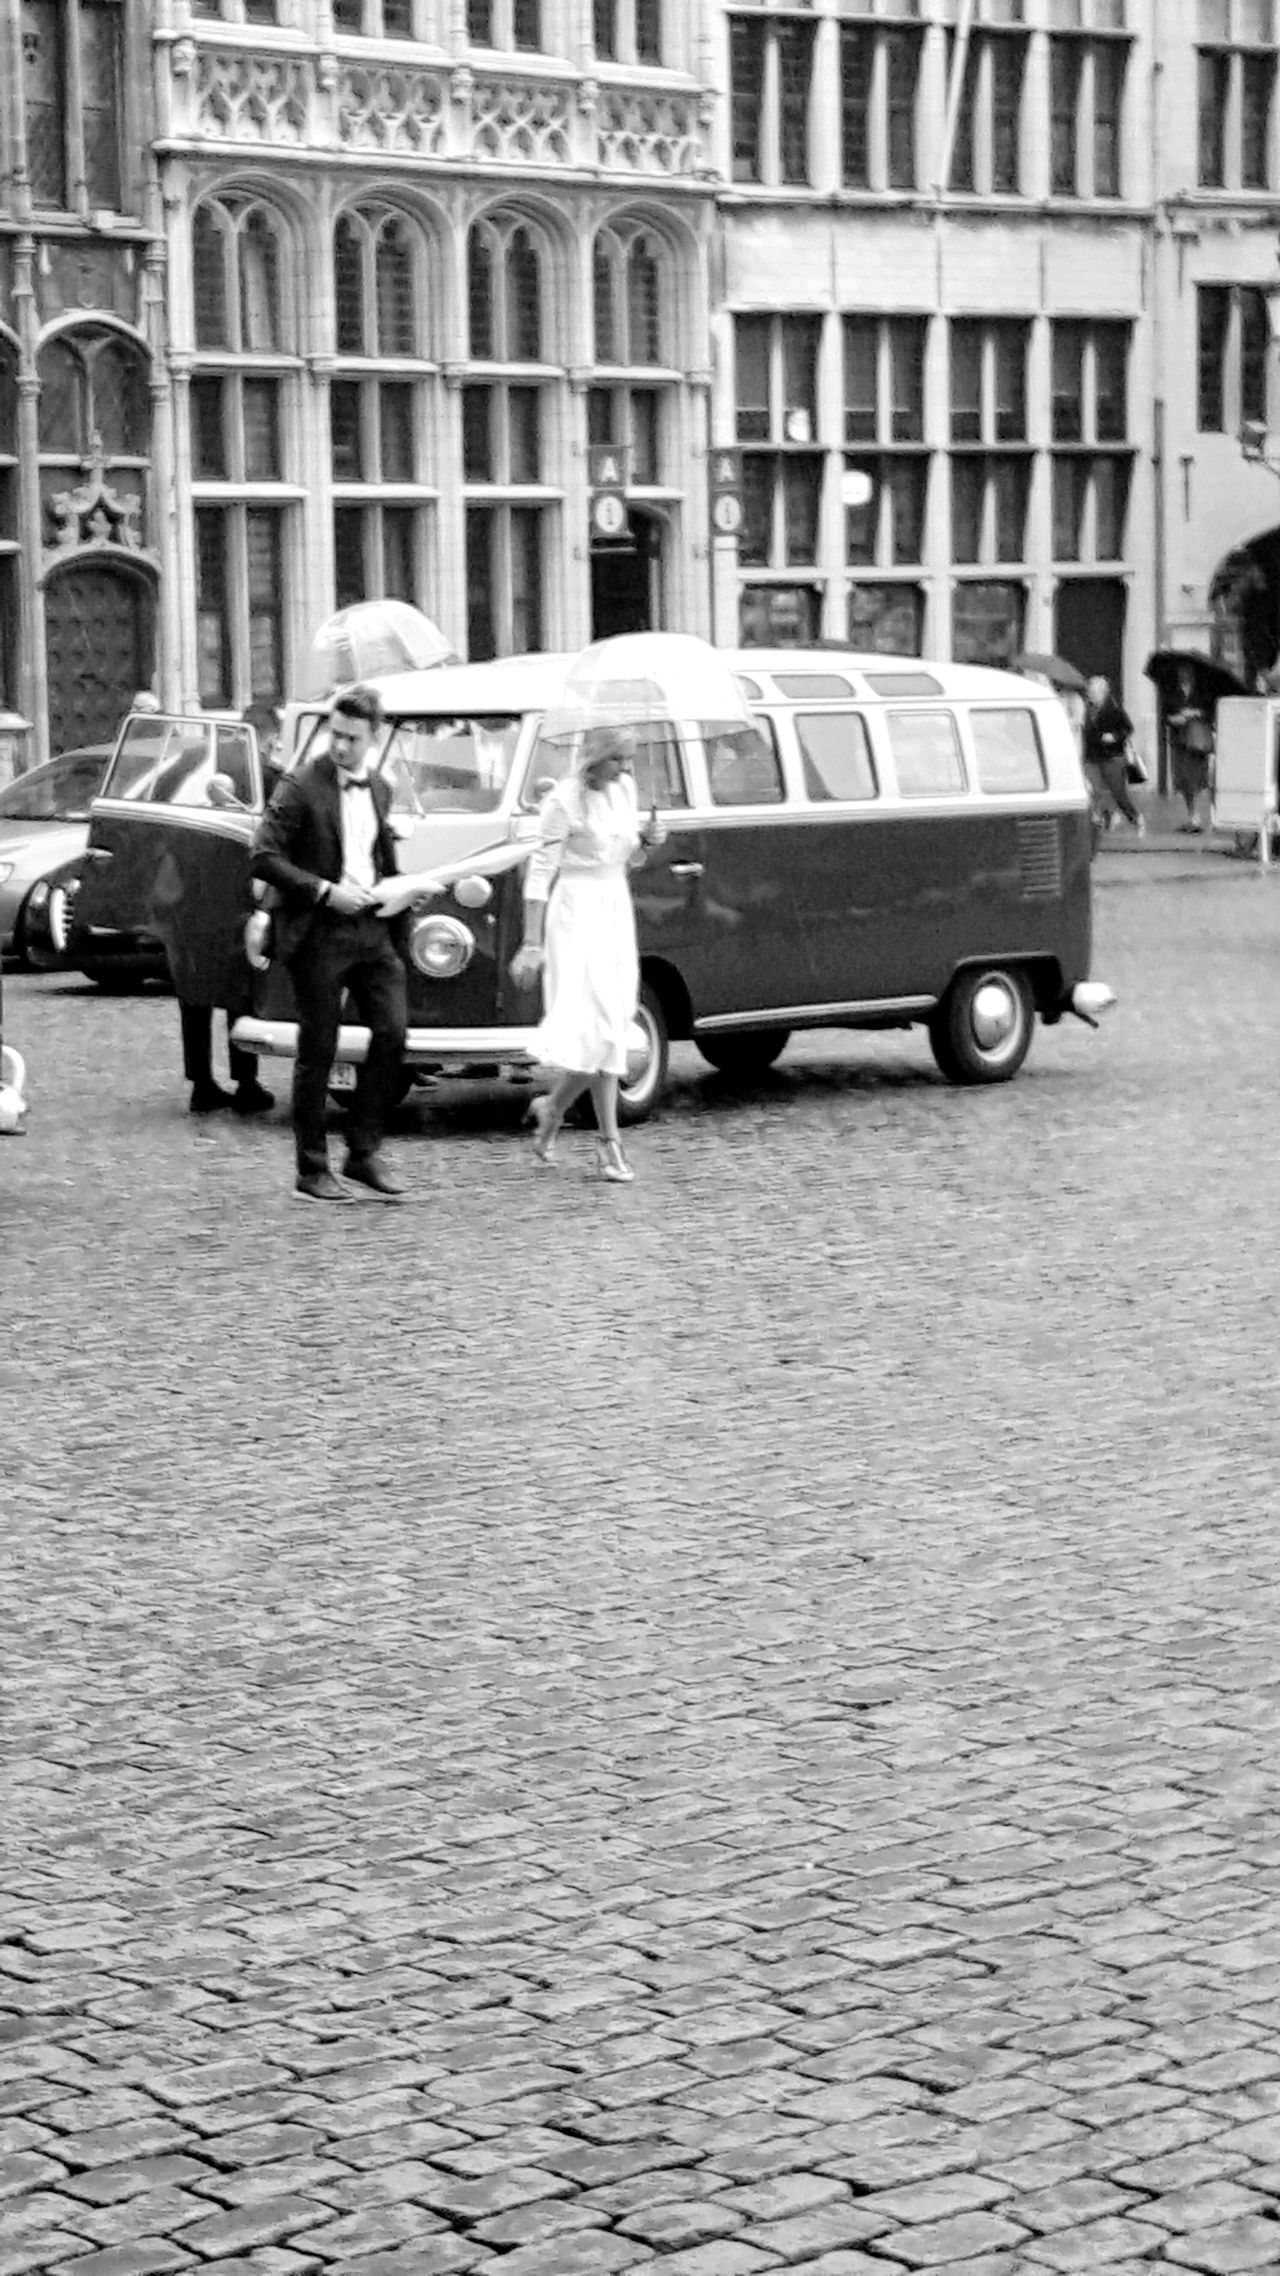 Weddingphotography Wedding Photography Weddings Around The World Eye4photography  People Photography Volkswagen Volkswagenbus Wedding Day Weddingphotographer Peoplephotography People Of EyeEm